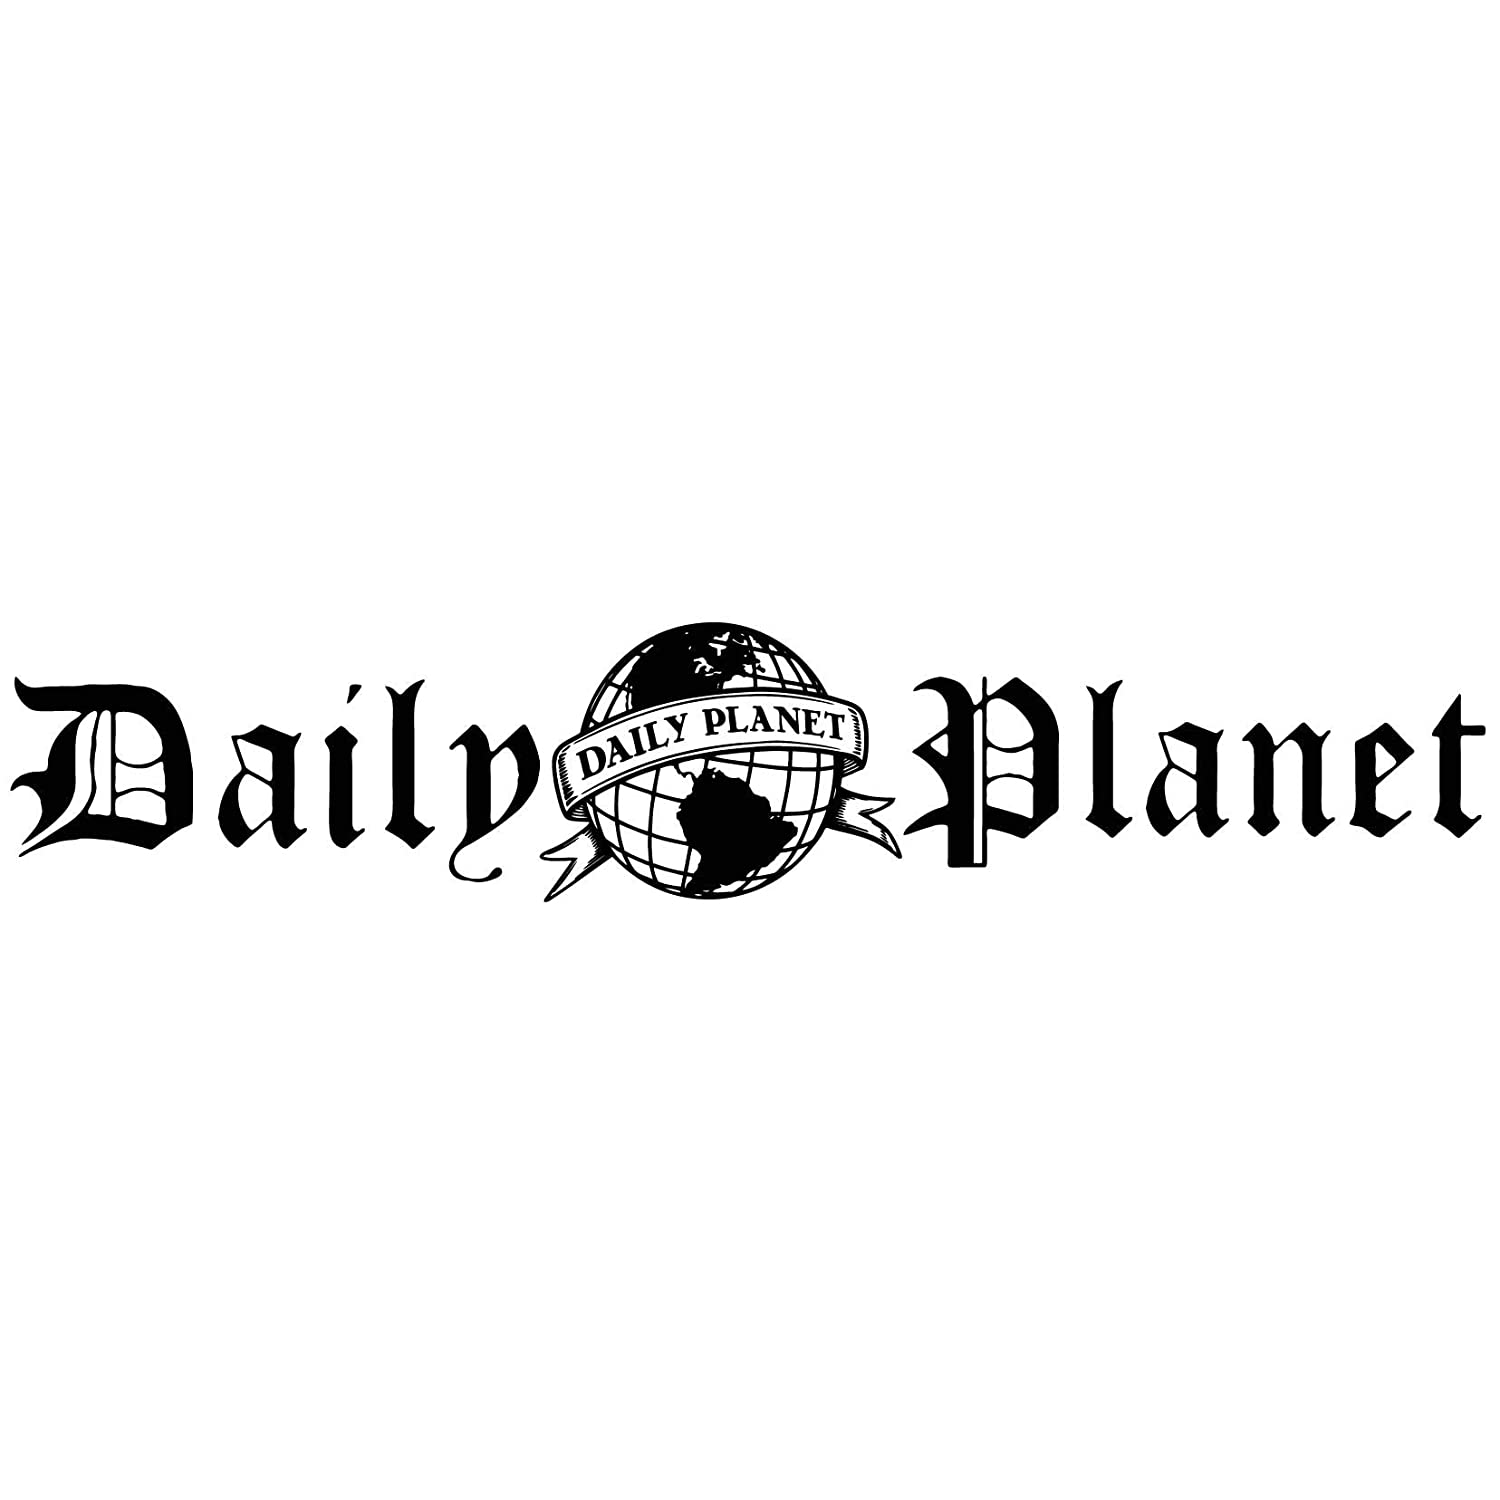 Amazoncom Daily Planet Logo Vinyl Decal Sticker For Wall